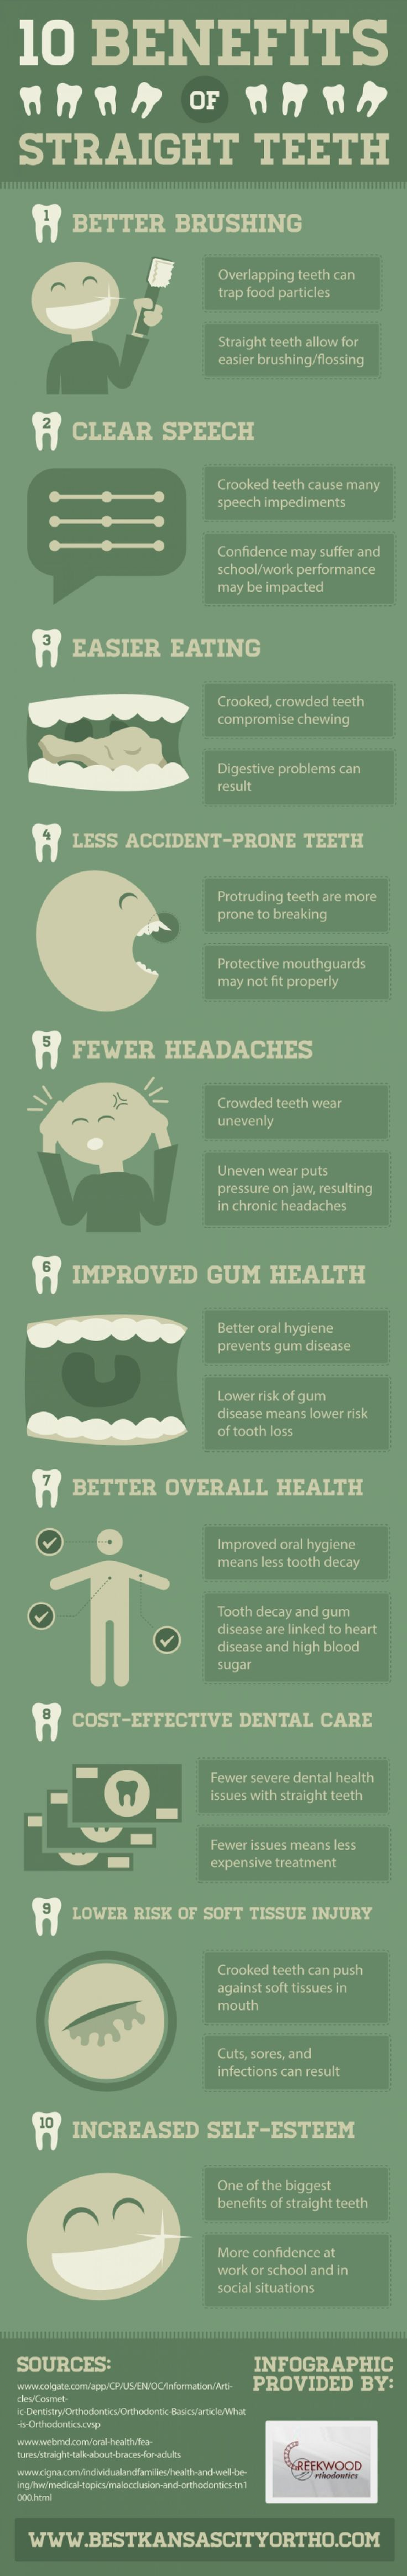 10 Benefits of Straight Teeth Infographic                                                                                                                                                                                 More